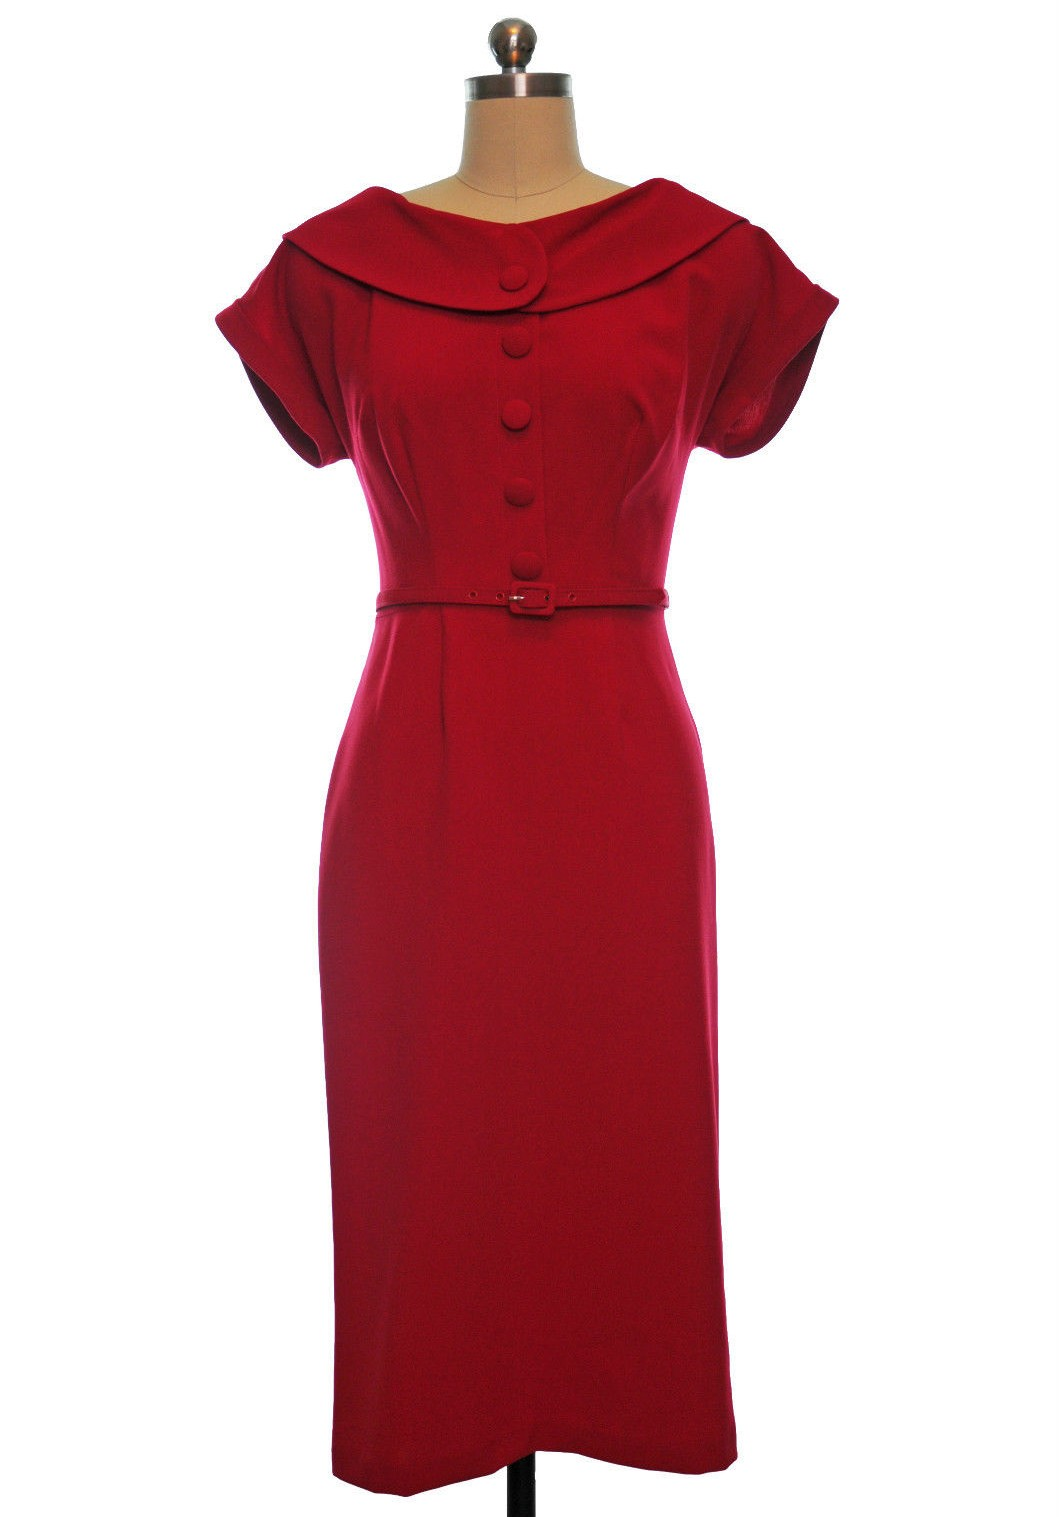 50s conventional vintage pin up dress